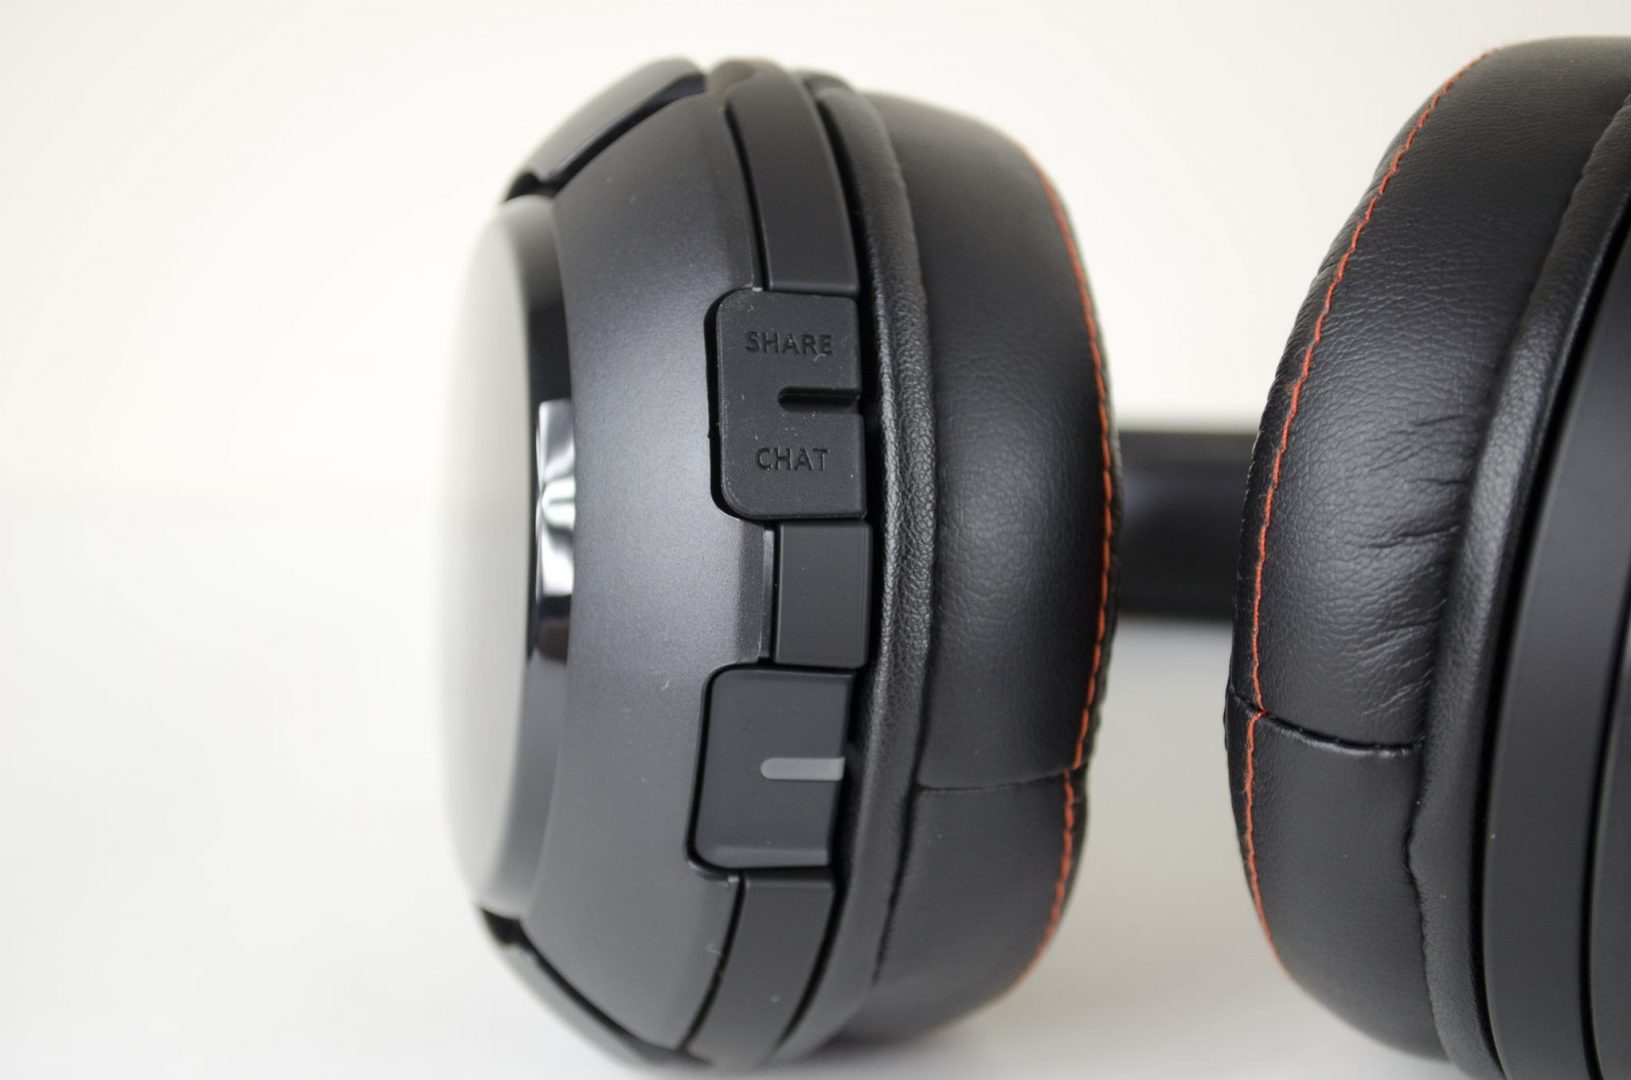 steelseries siber 800 wireless gaming headset review_21